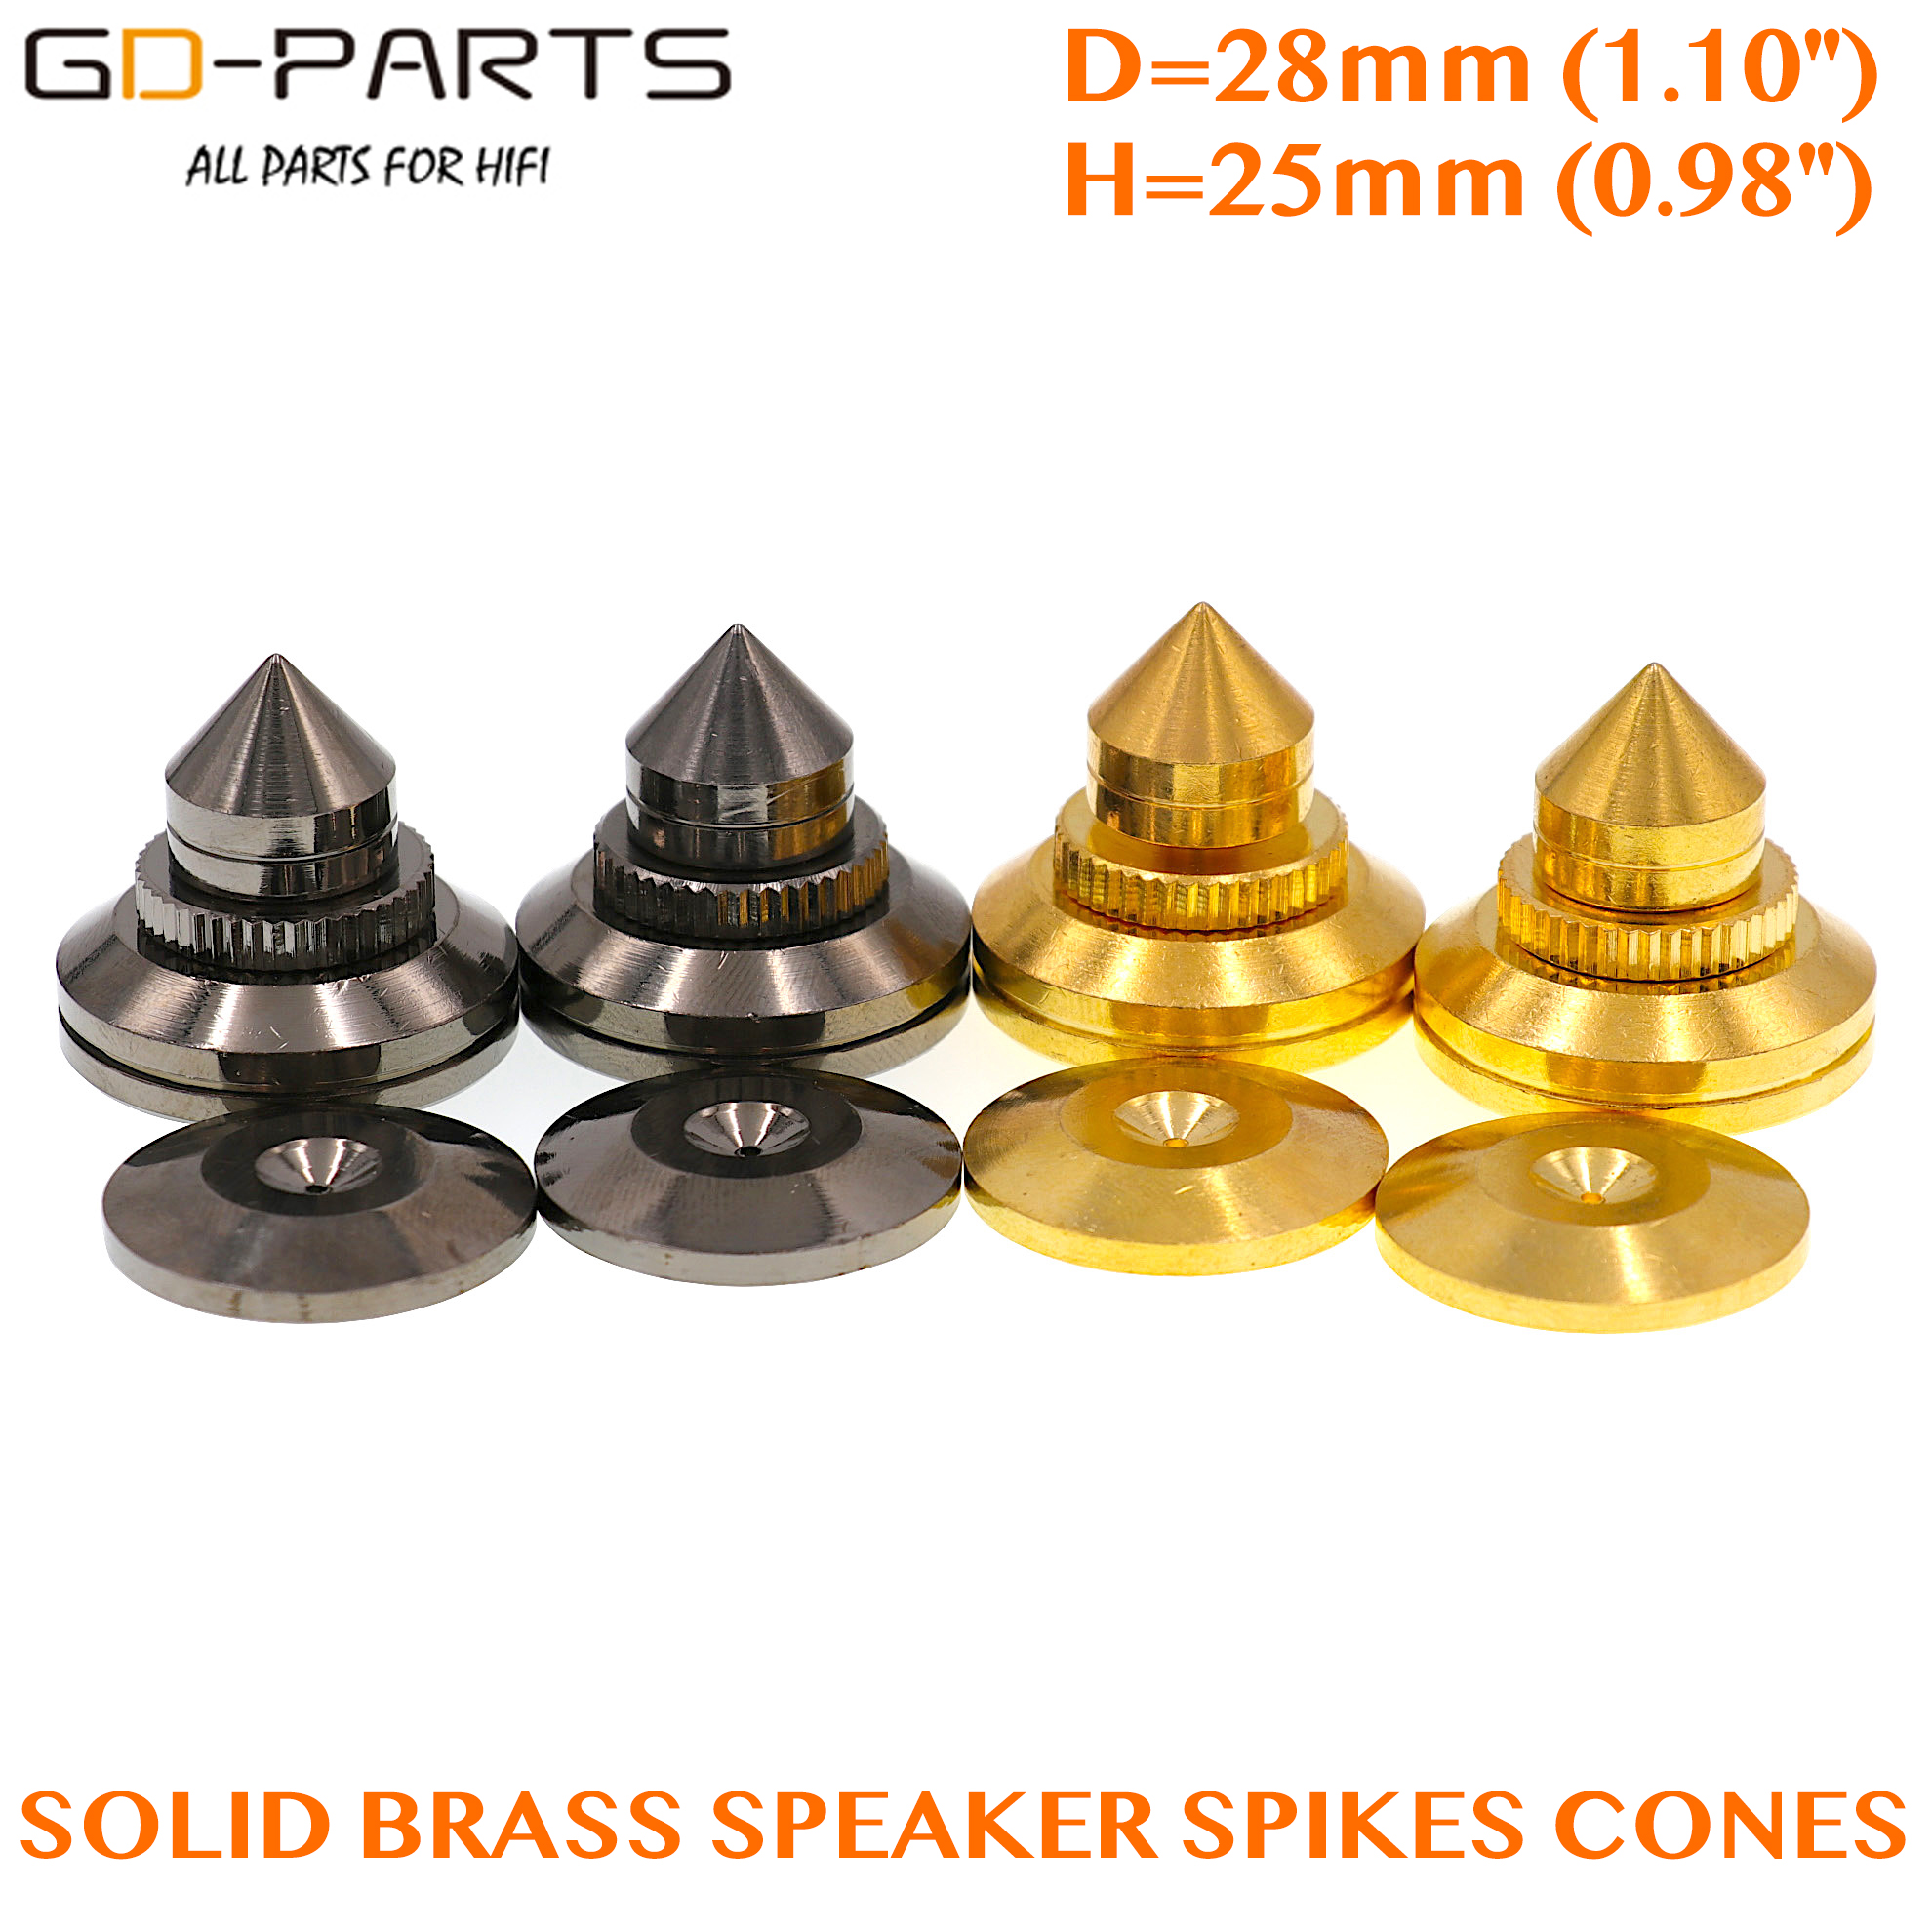 28x25mm Brass Speaker AMP Isolation Spikes Vibration Cone Hifi Turntable AMP CD DAC Recorder Stand Feet Pads Floor Base Set Of 4